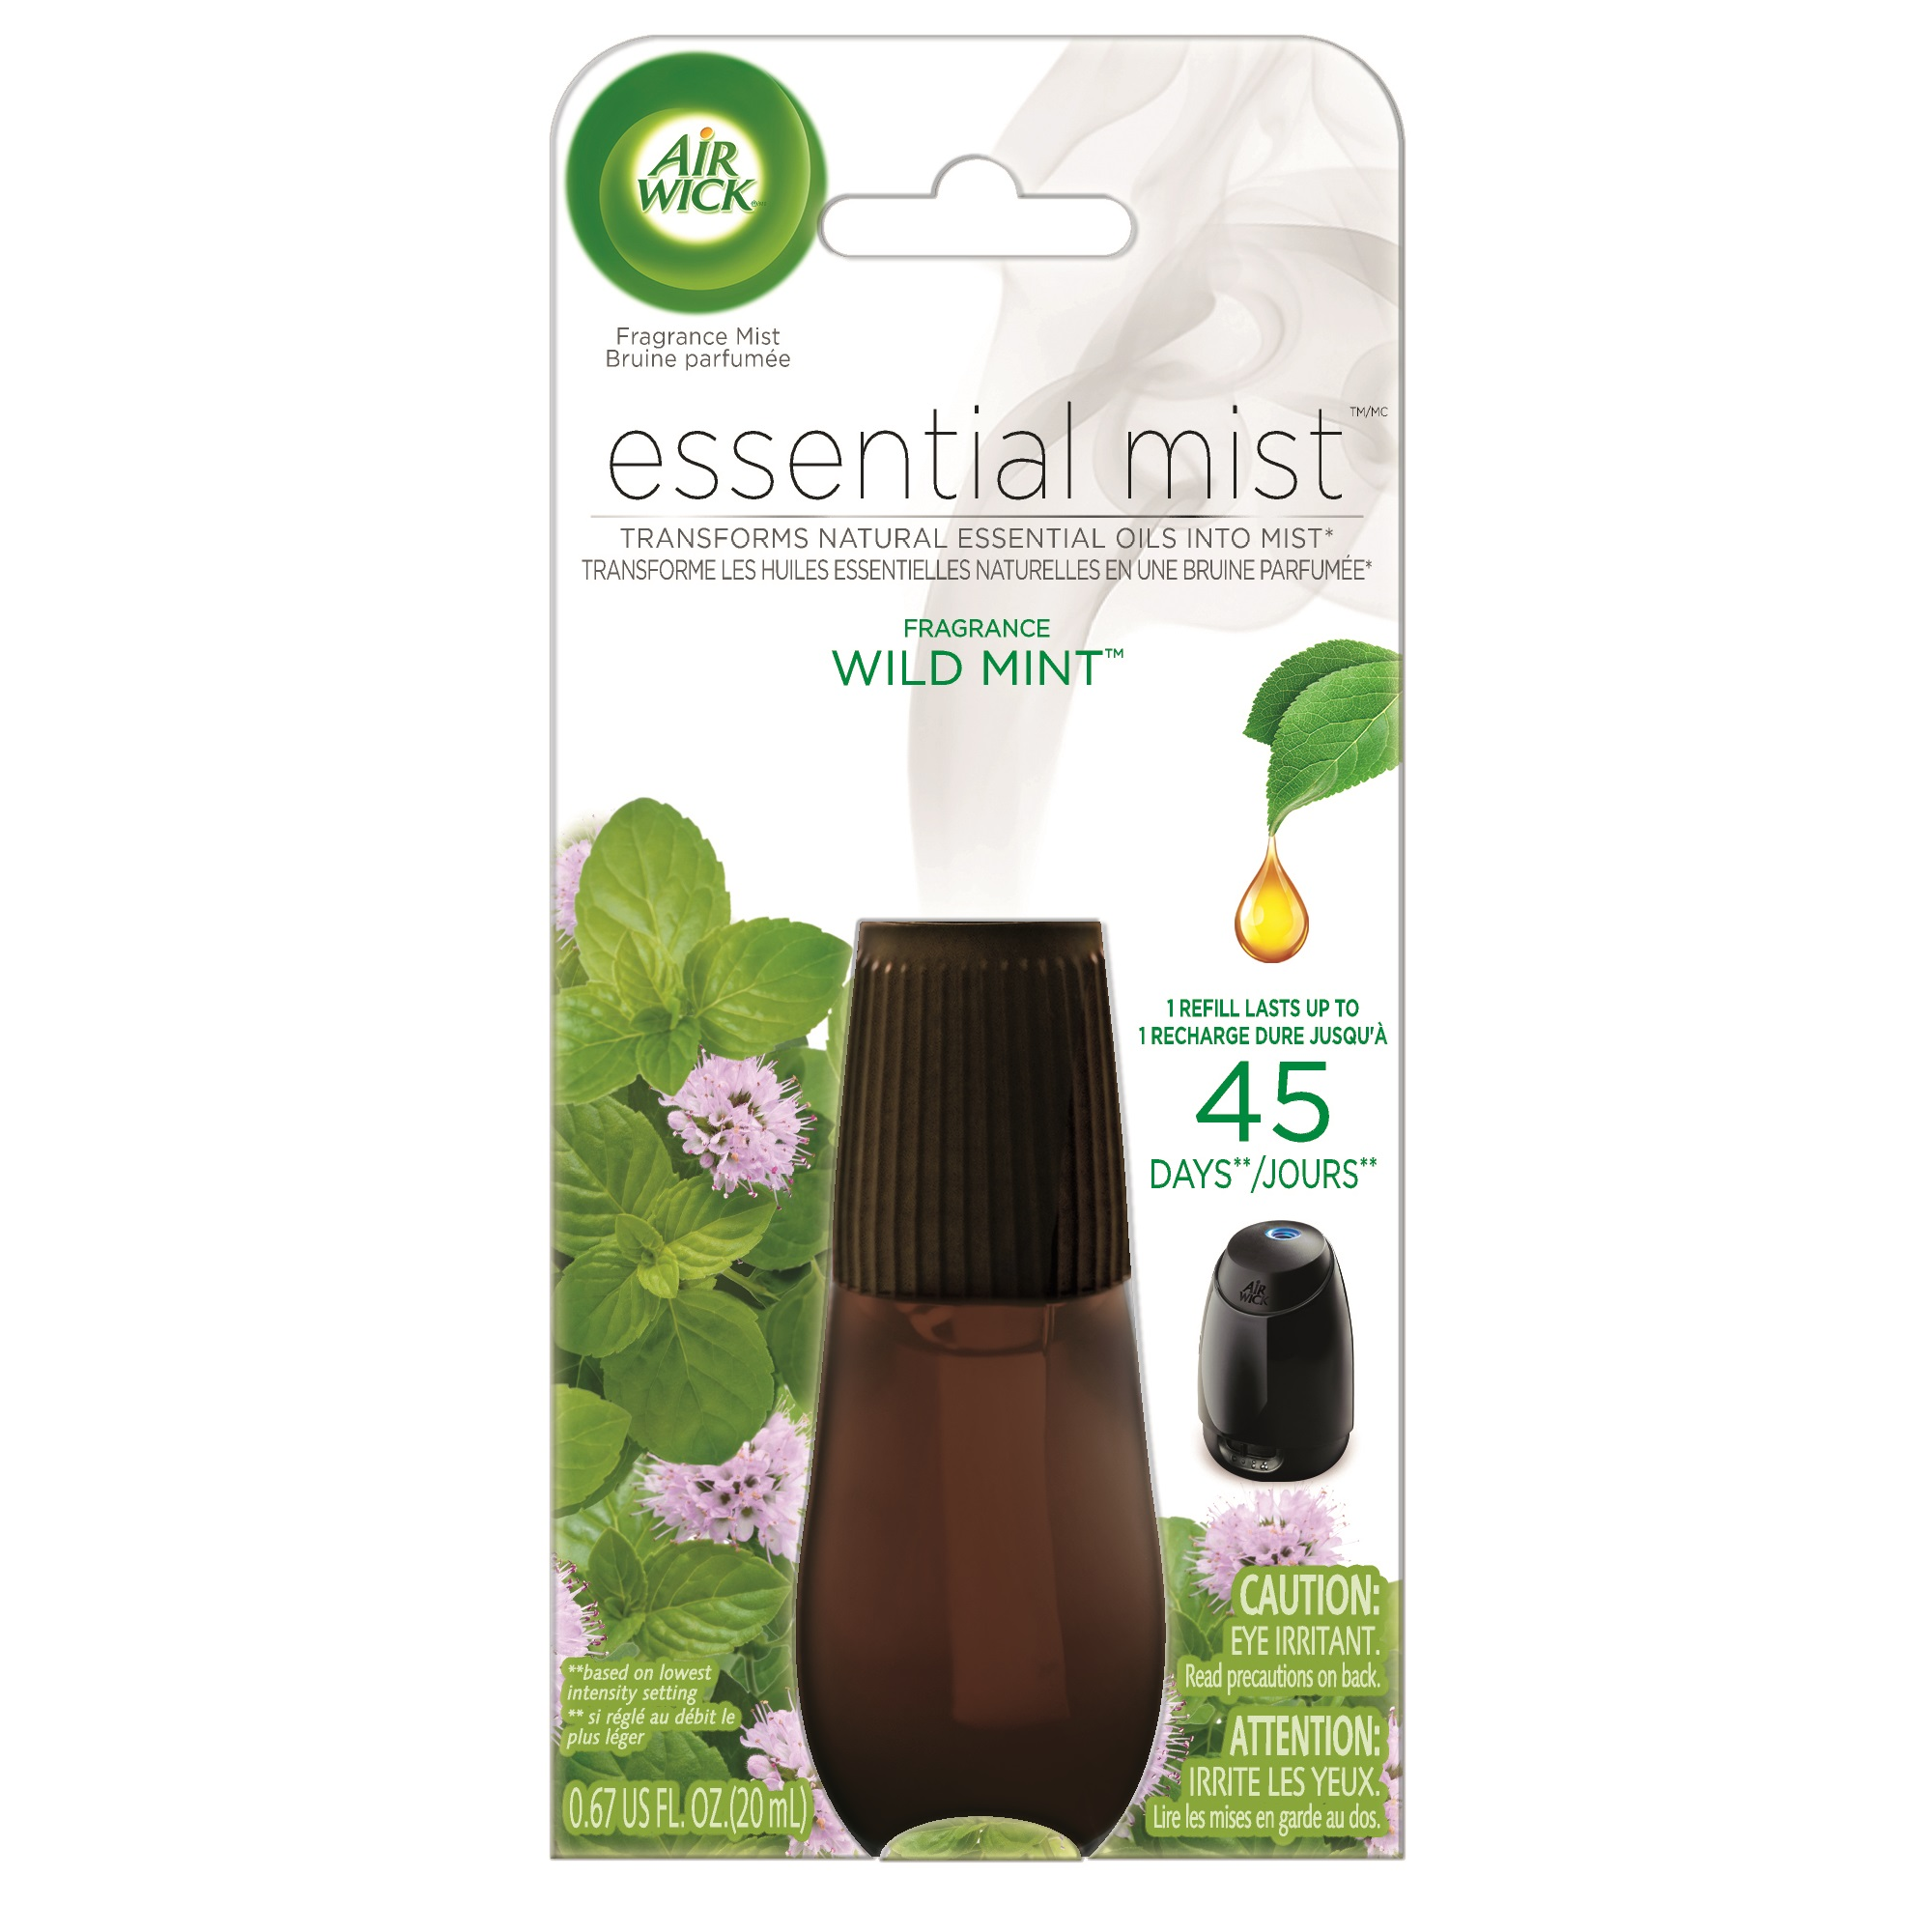 Air Wick Essential Mist Fragrance Oil Diffuser Refill, Wild Mint, Air Freshener